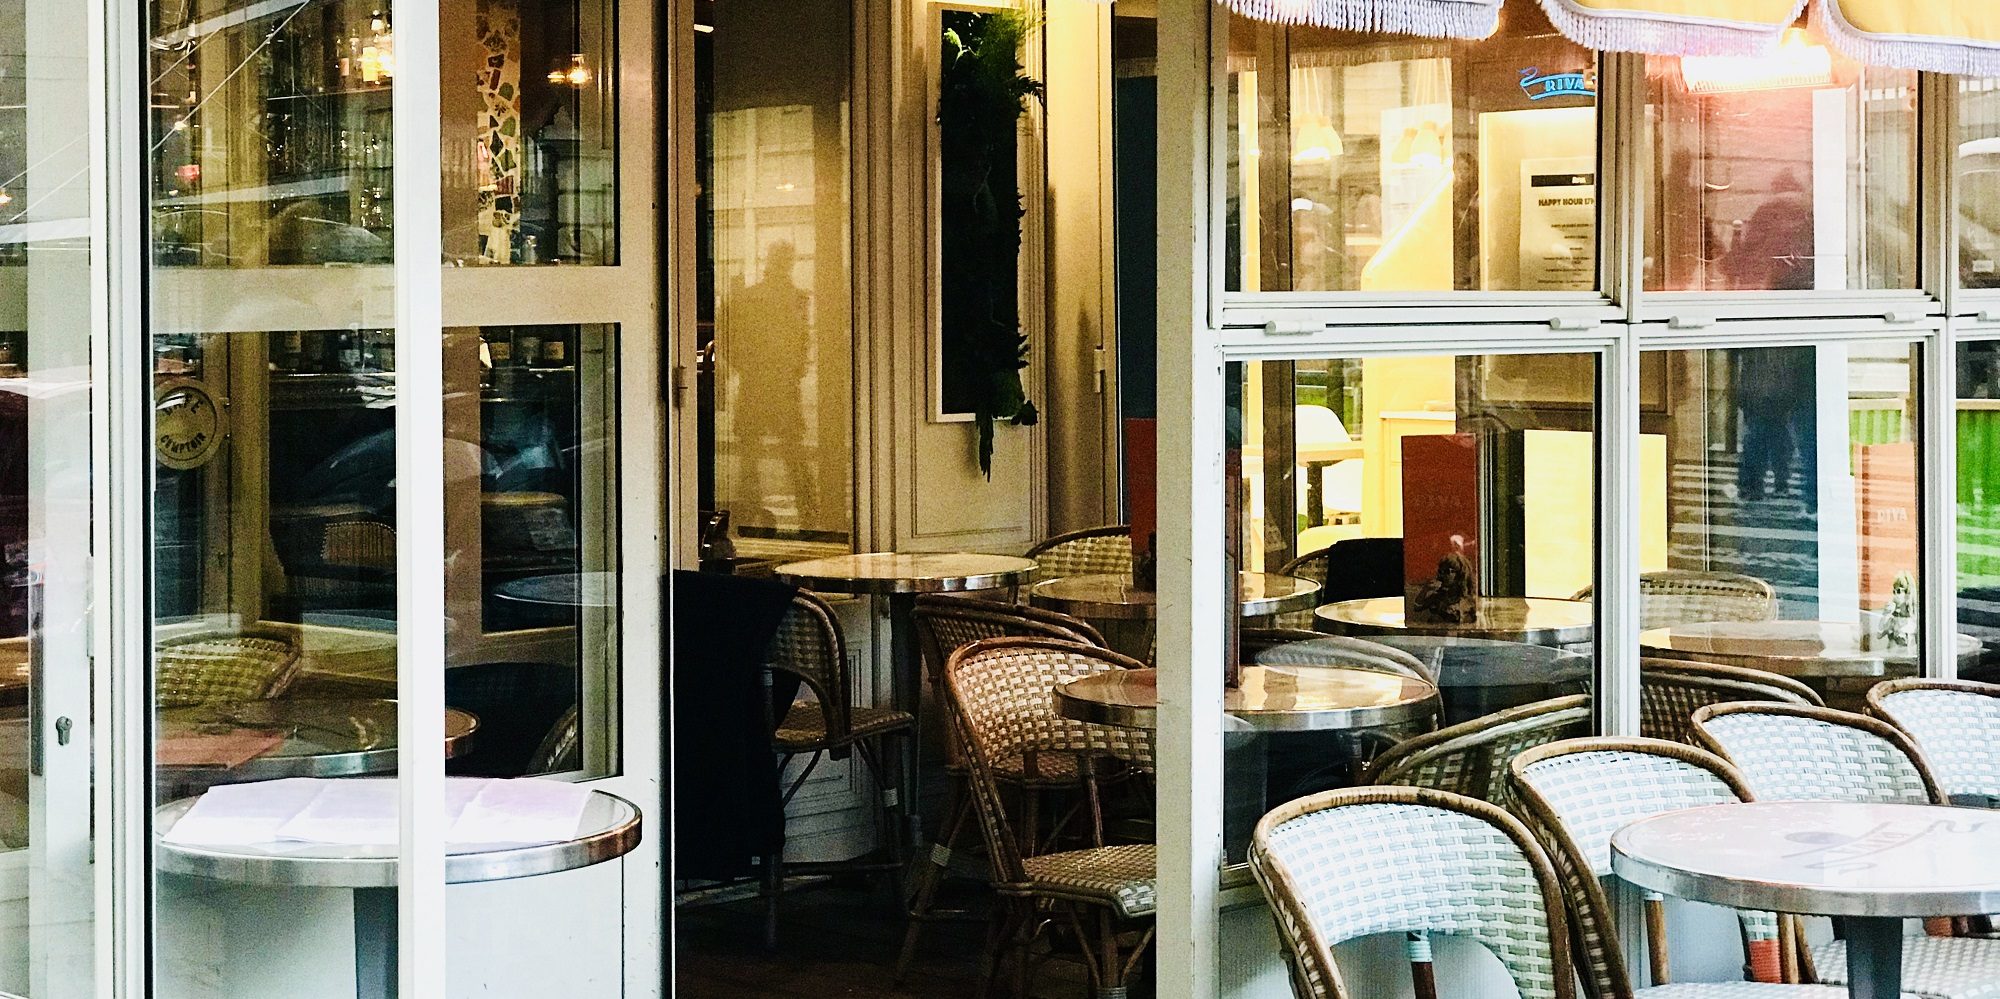 Brunch Riva (75008 Paris)